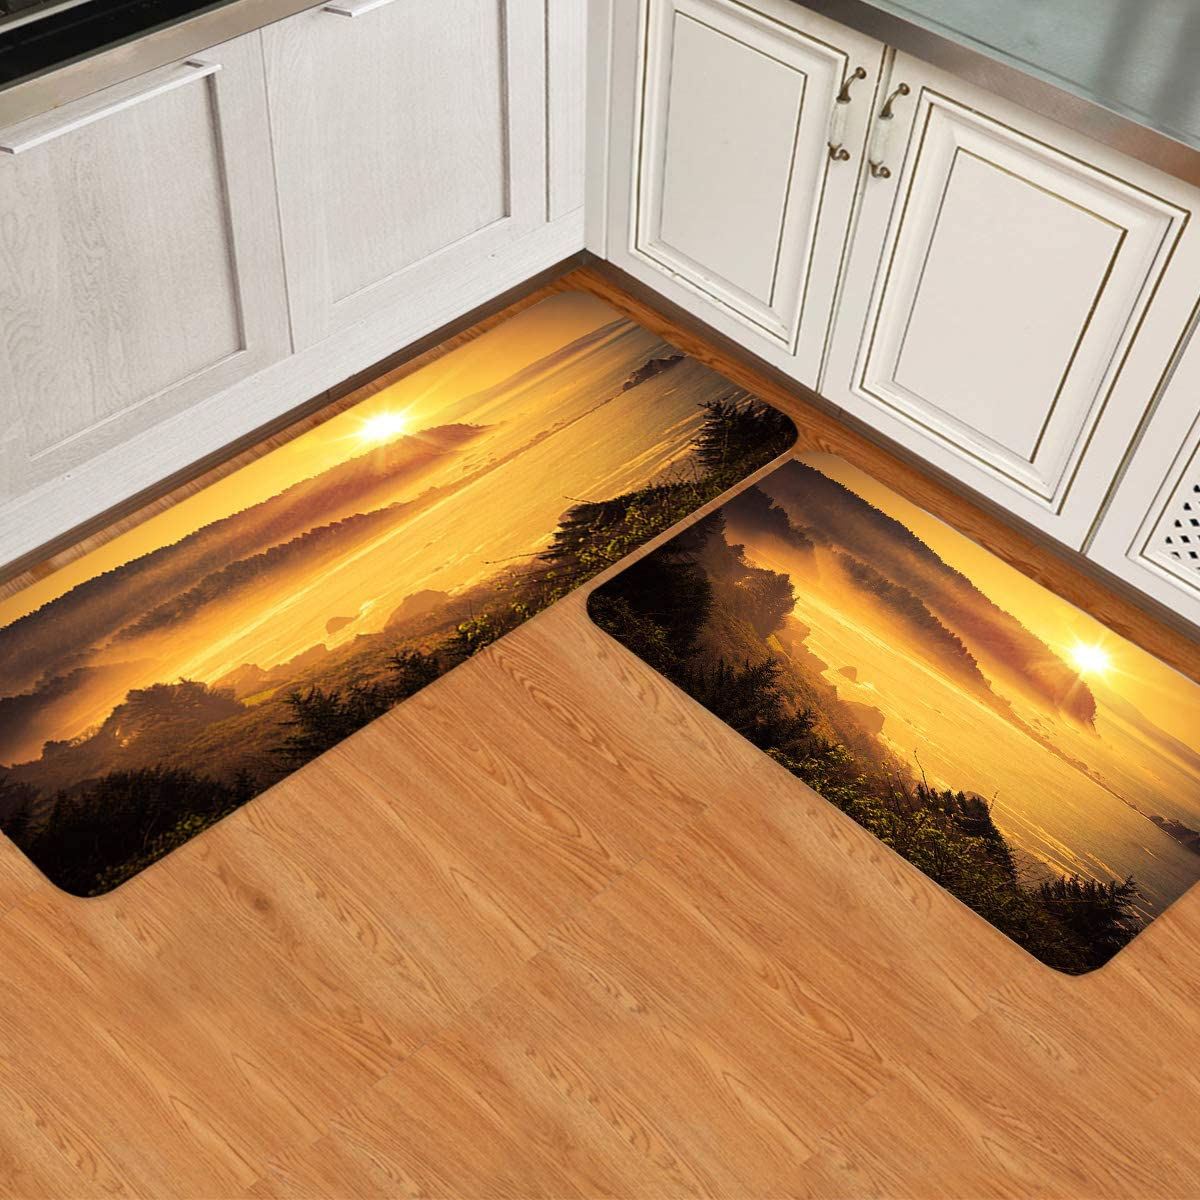 Olivefox Non-Slip Modern Omaha Mall 2 Pieces Kitchen Decor Mats for Laundry Popular standard